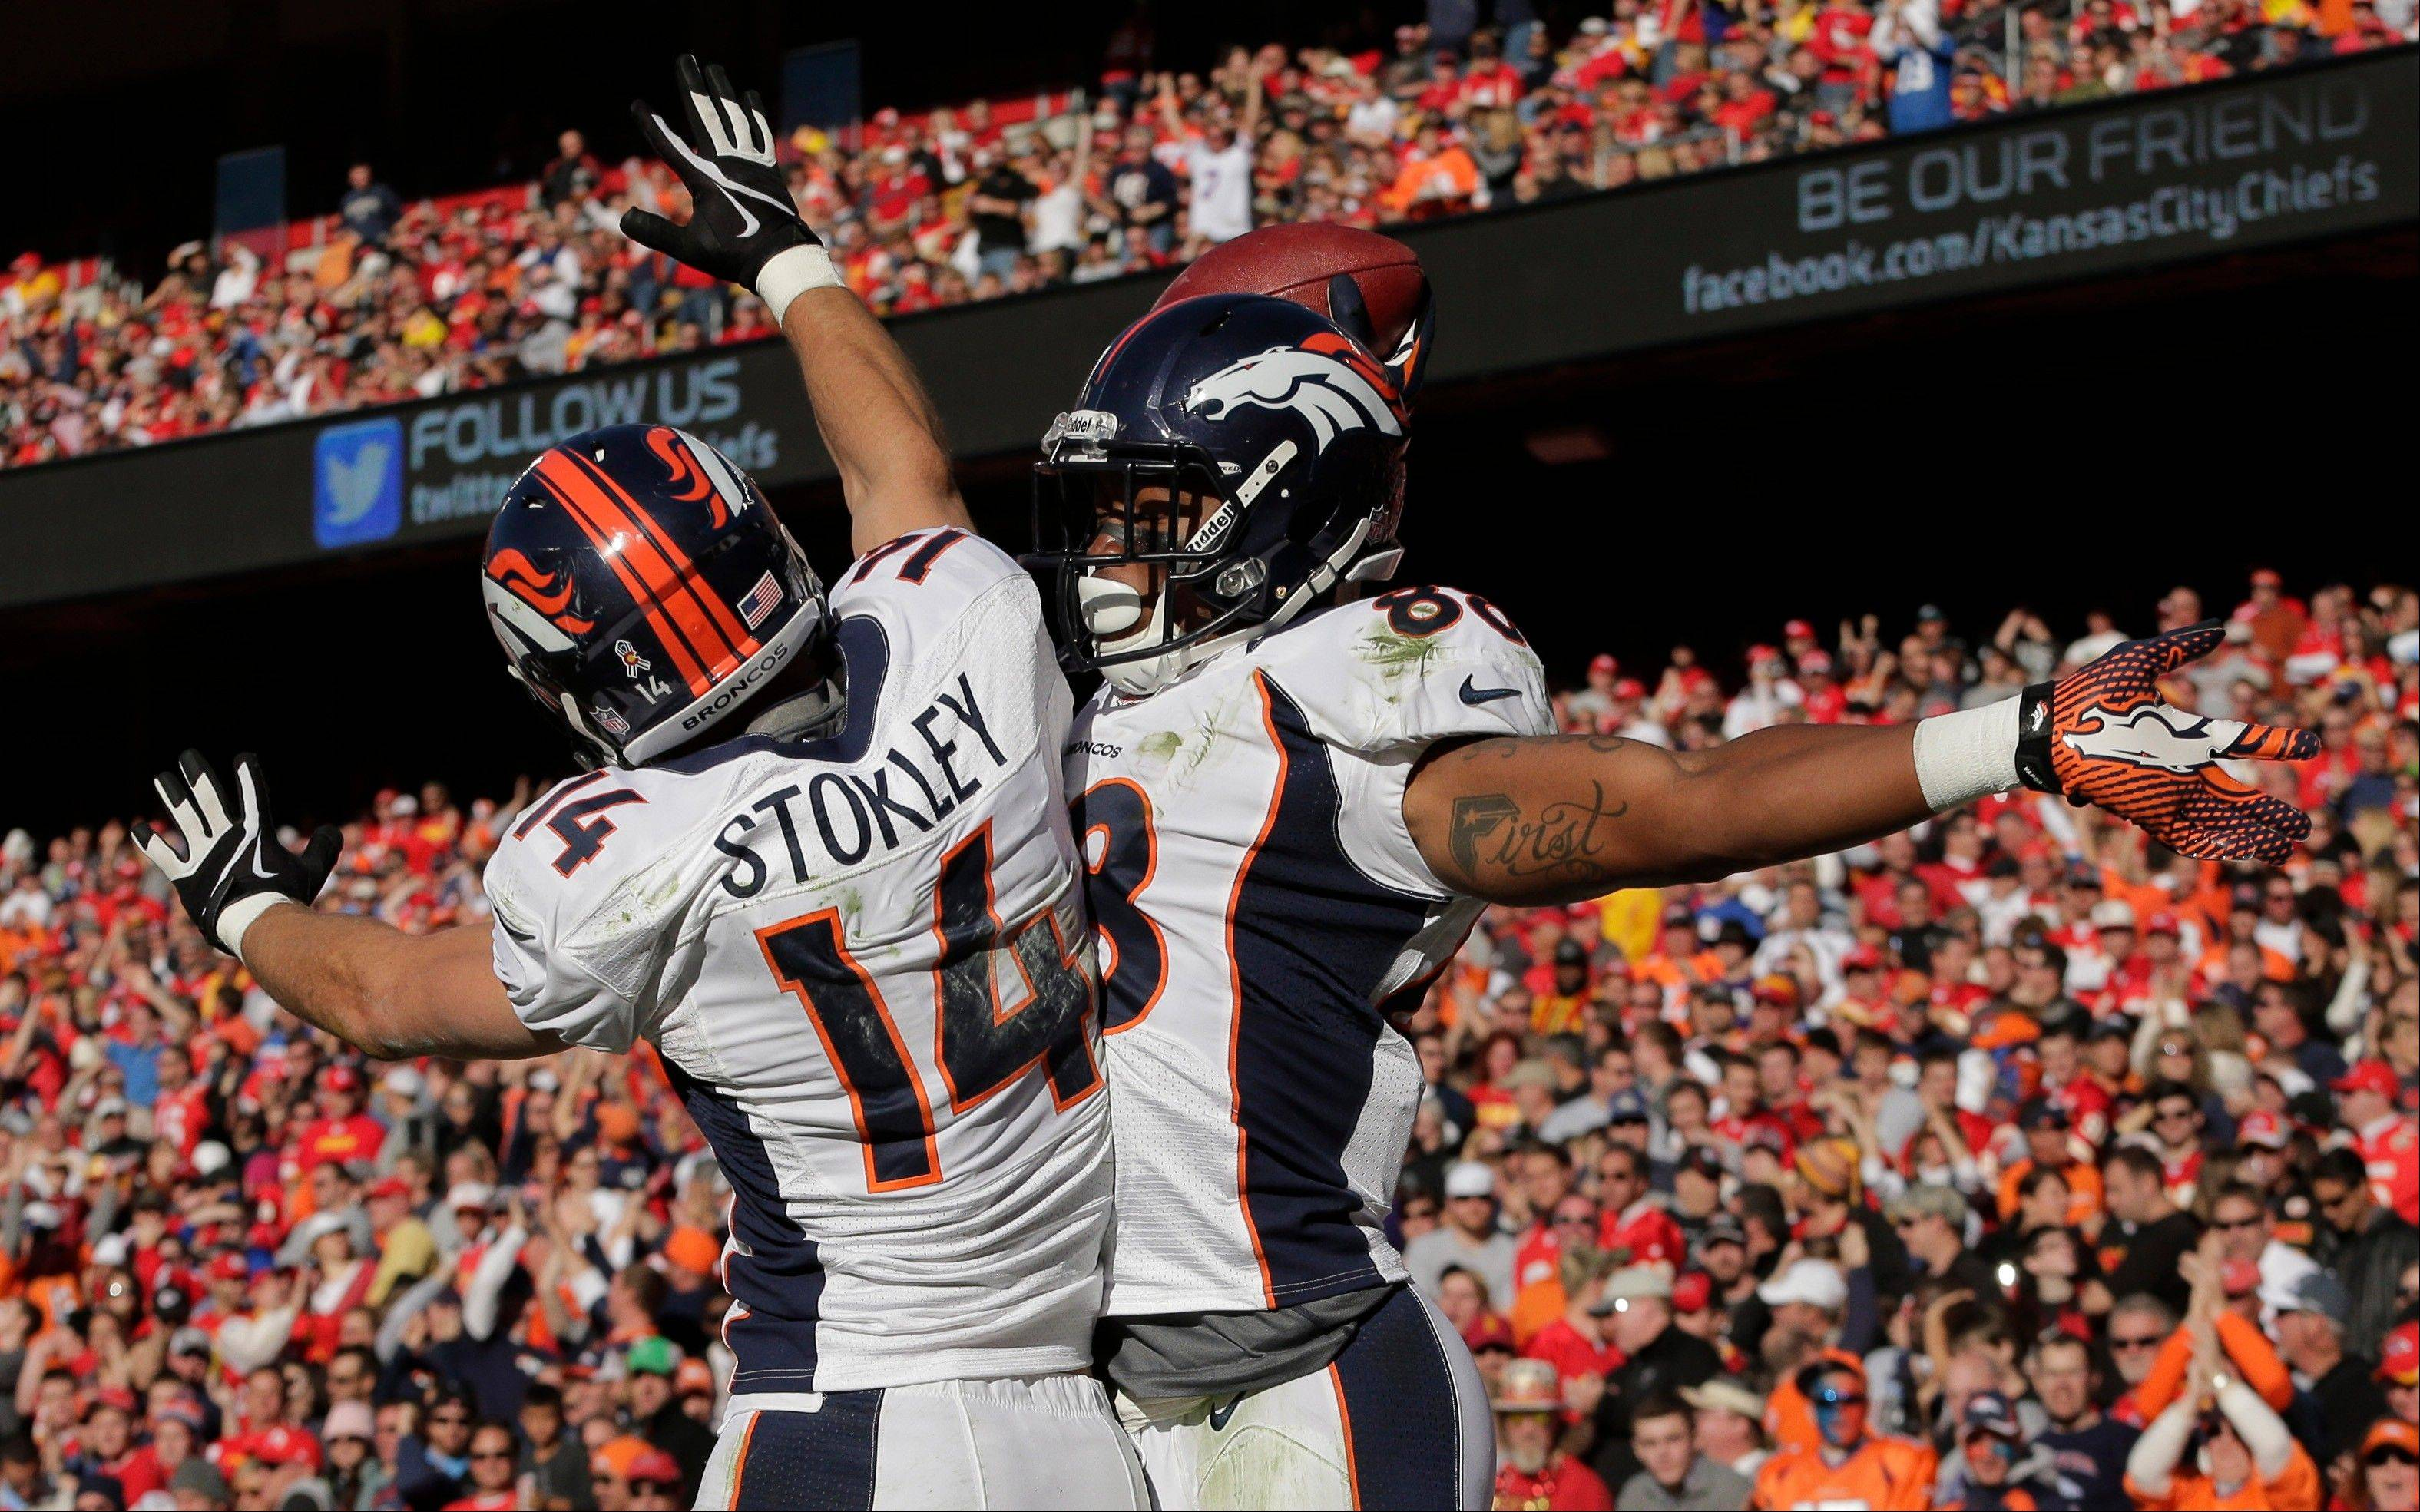 Denver Broncos wide receivers Demaryius Thomas (88) and Brandon Stokley celebrate a touchdown during the second half Sunday against the Kansas City Chiefs at Arrowhead Stadium in Kansas City, Mo.